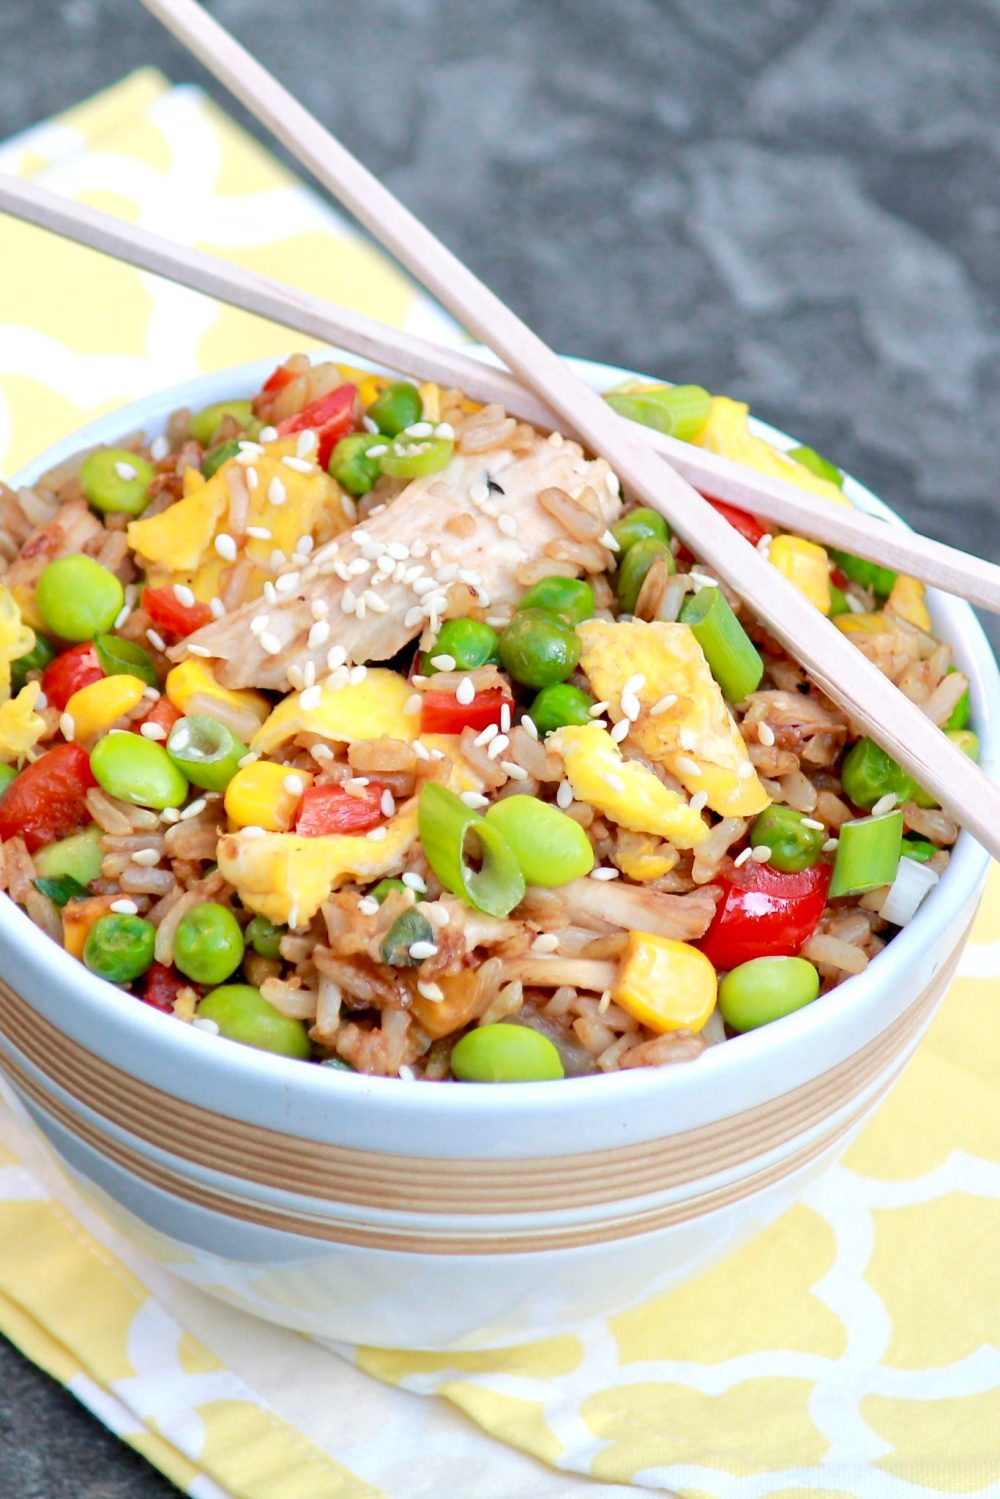 The flavor of homemade fried rice will rival your favorite takeout version and be healthier, too. Make use of leftover rice and chicken for the easiest of meals.